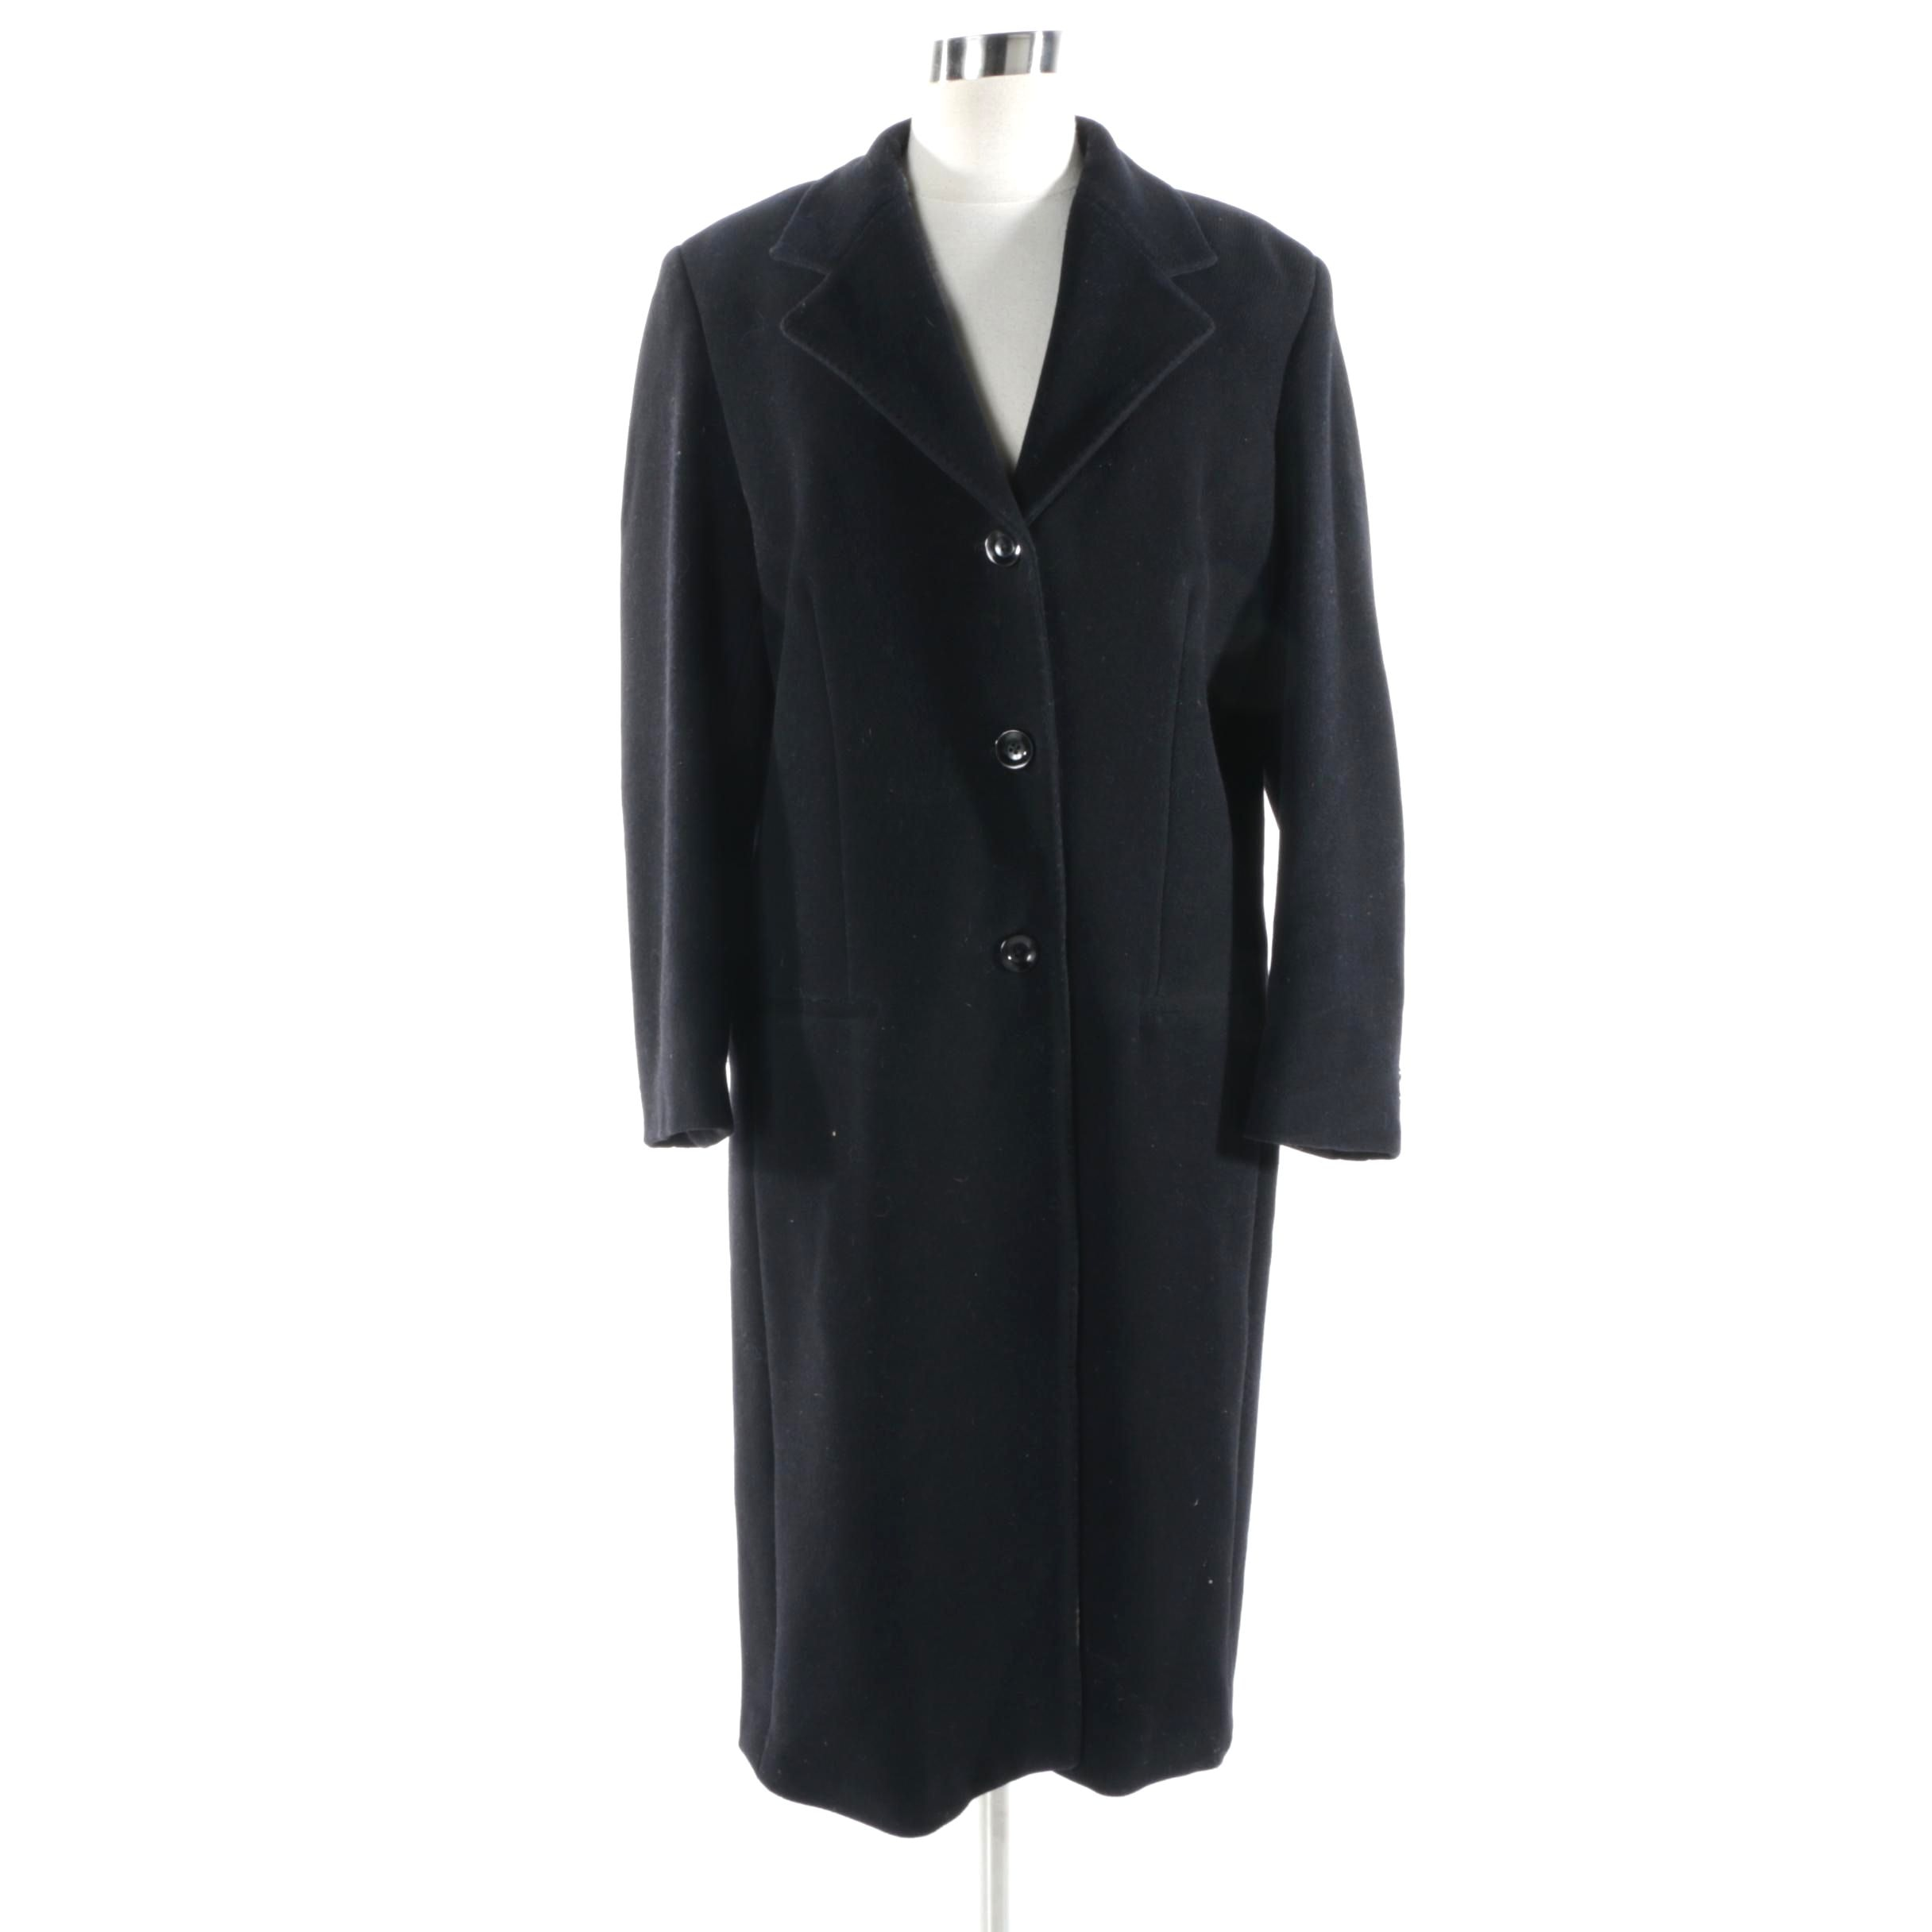 Women's Max Mara Black Wool Blend Overcoat